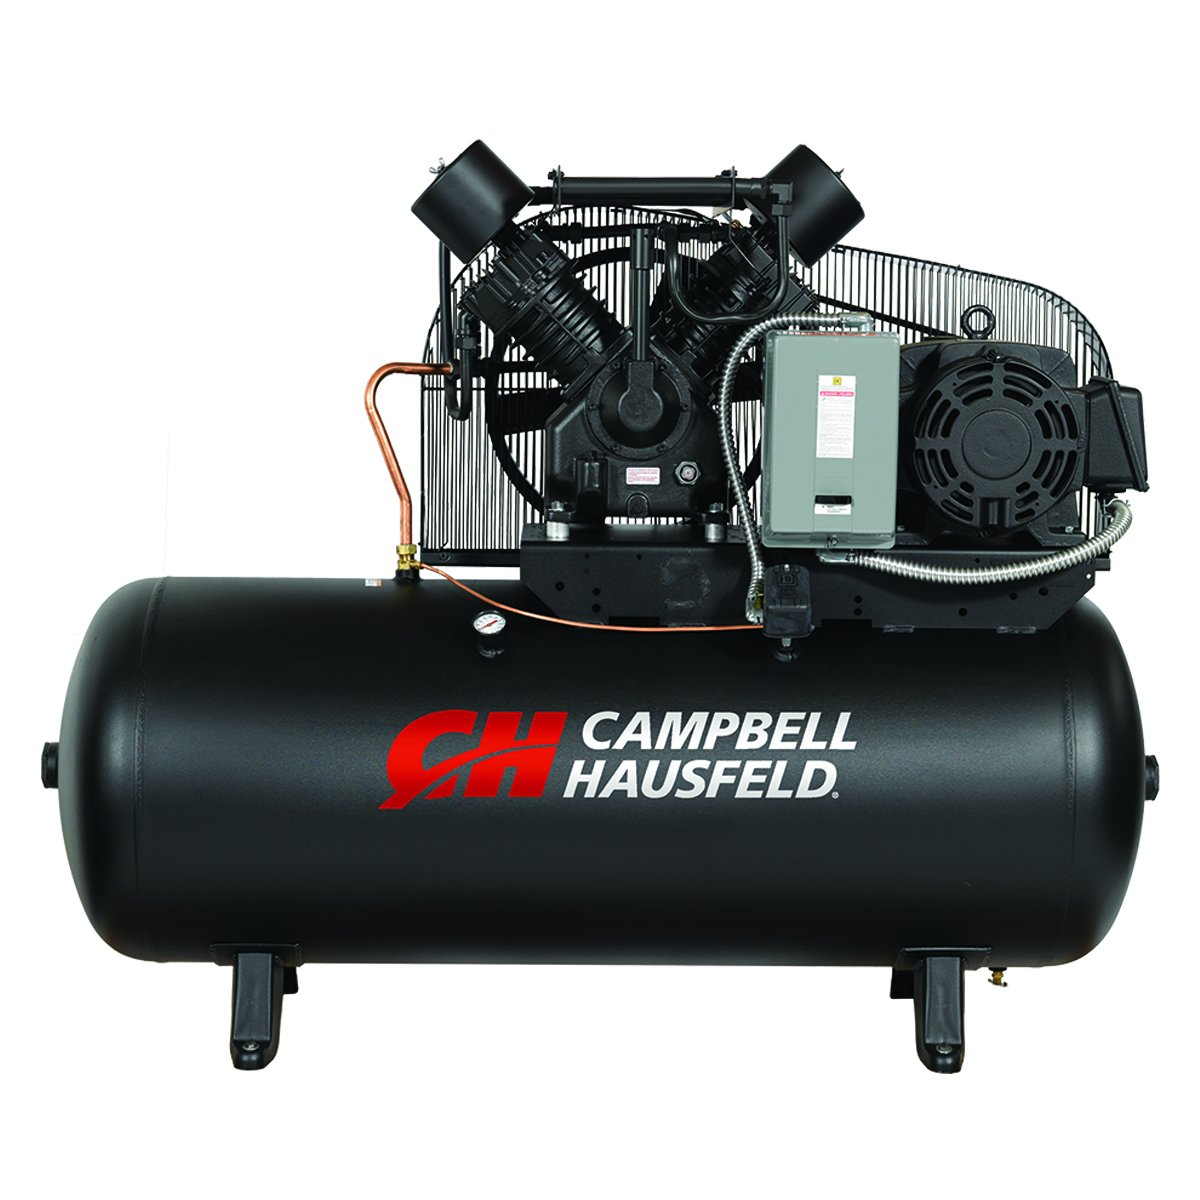 Campbell hausfeld 2 gallon air compressor hole cleaning brush